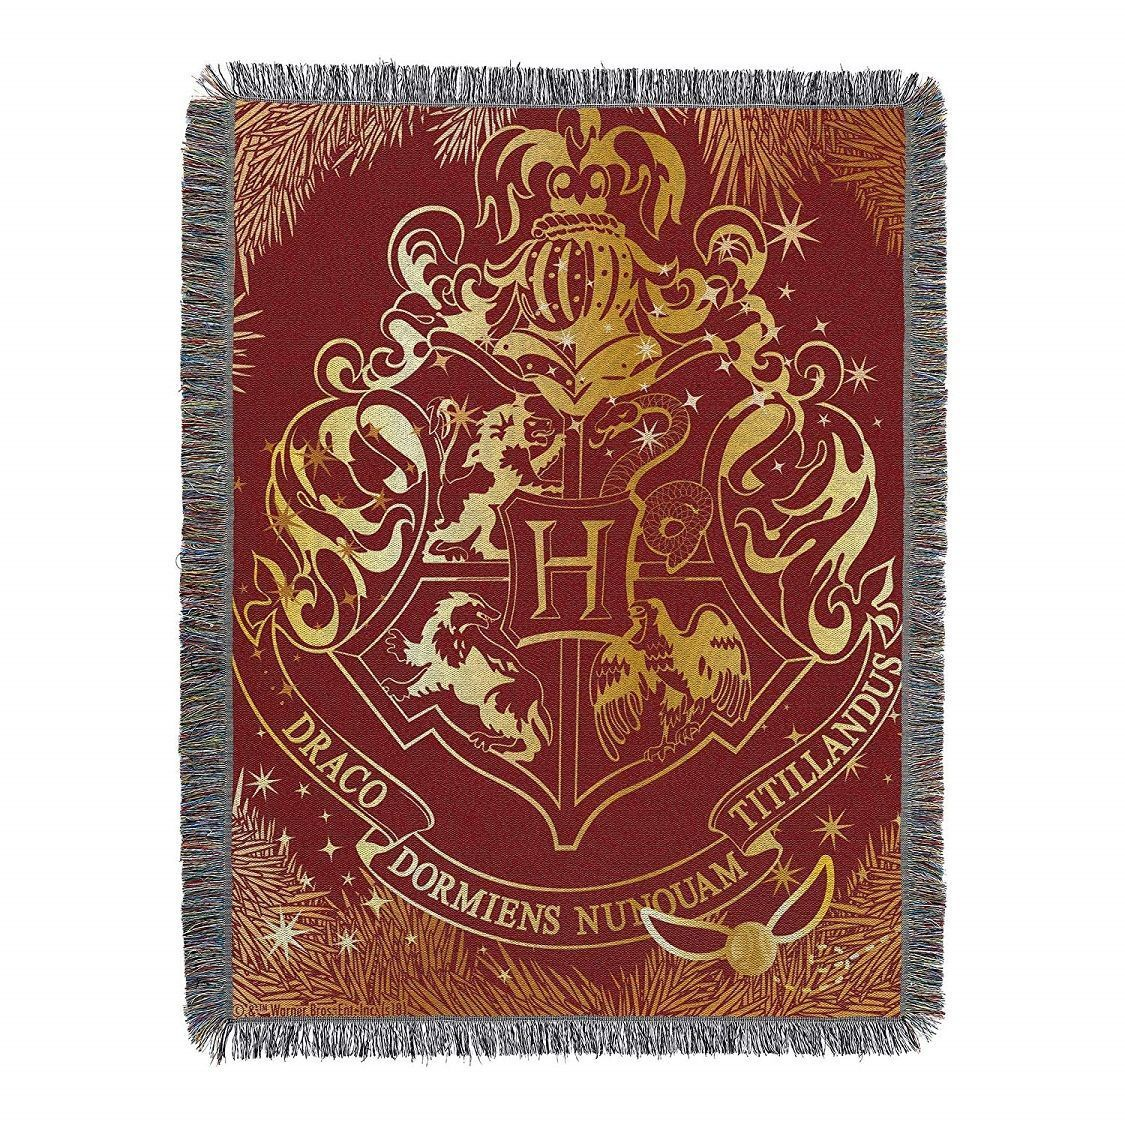 hogwarts yule tapestry throw blanket harry potter gifts. Black Bedroom Furniture Sets. Home Design Ideas